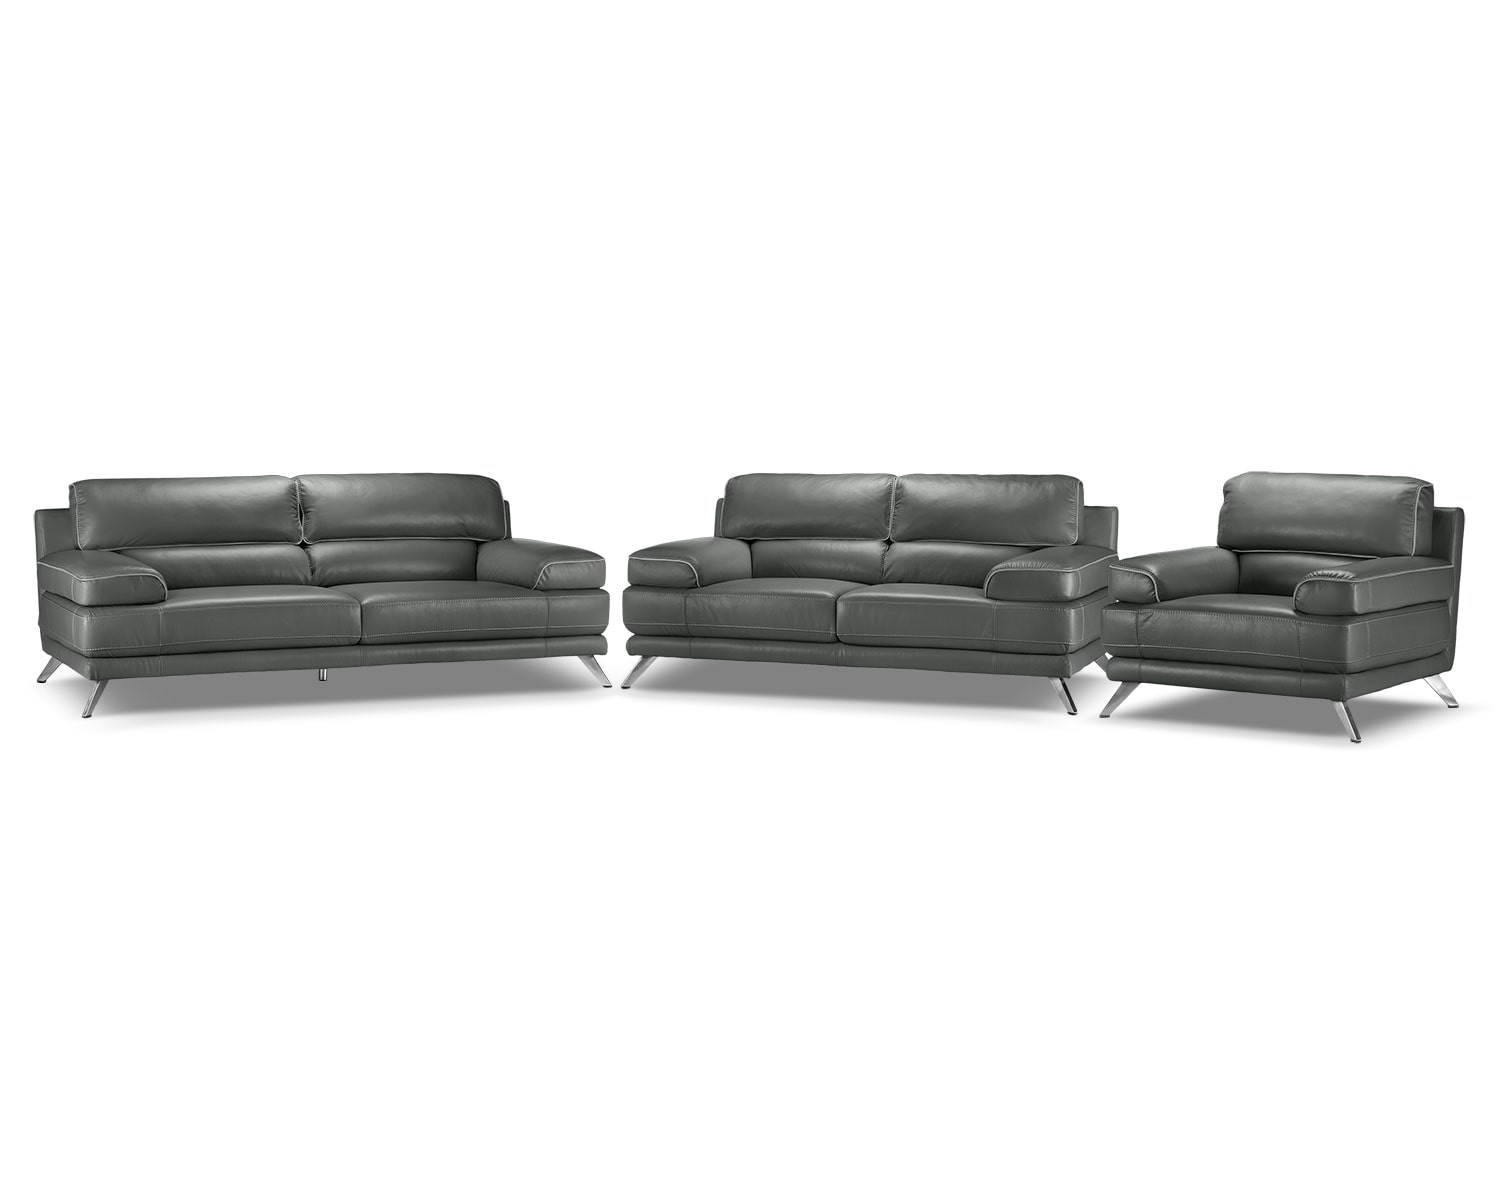 Sutton 3 Pc. Living Room Package - Charcoal Grey